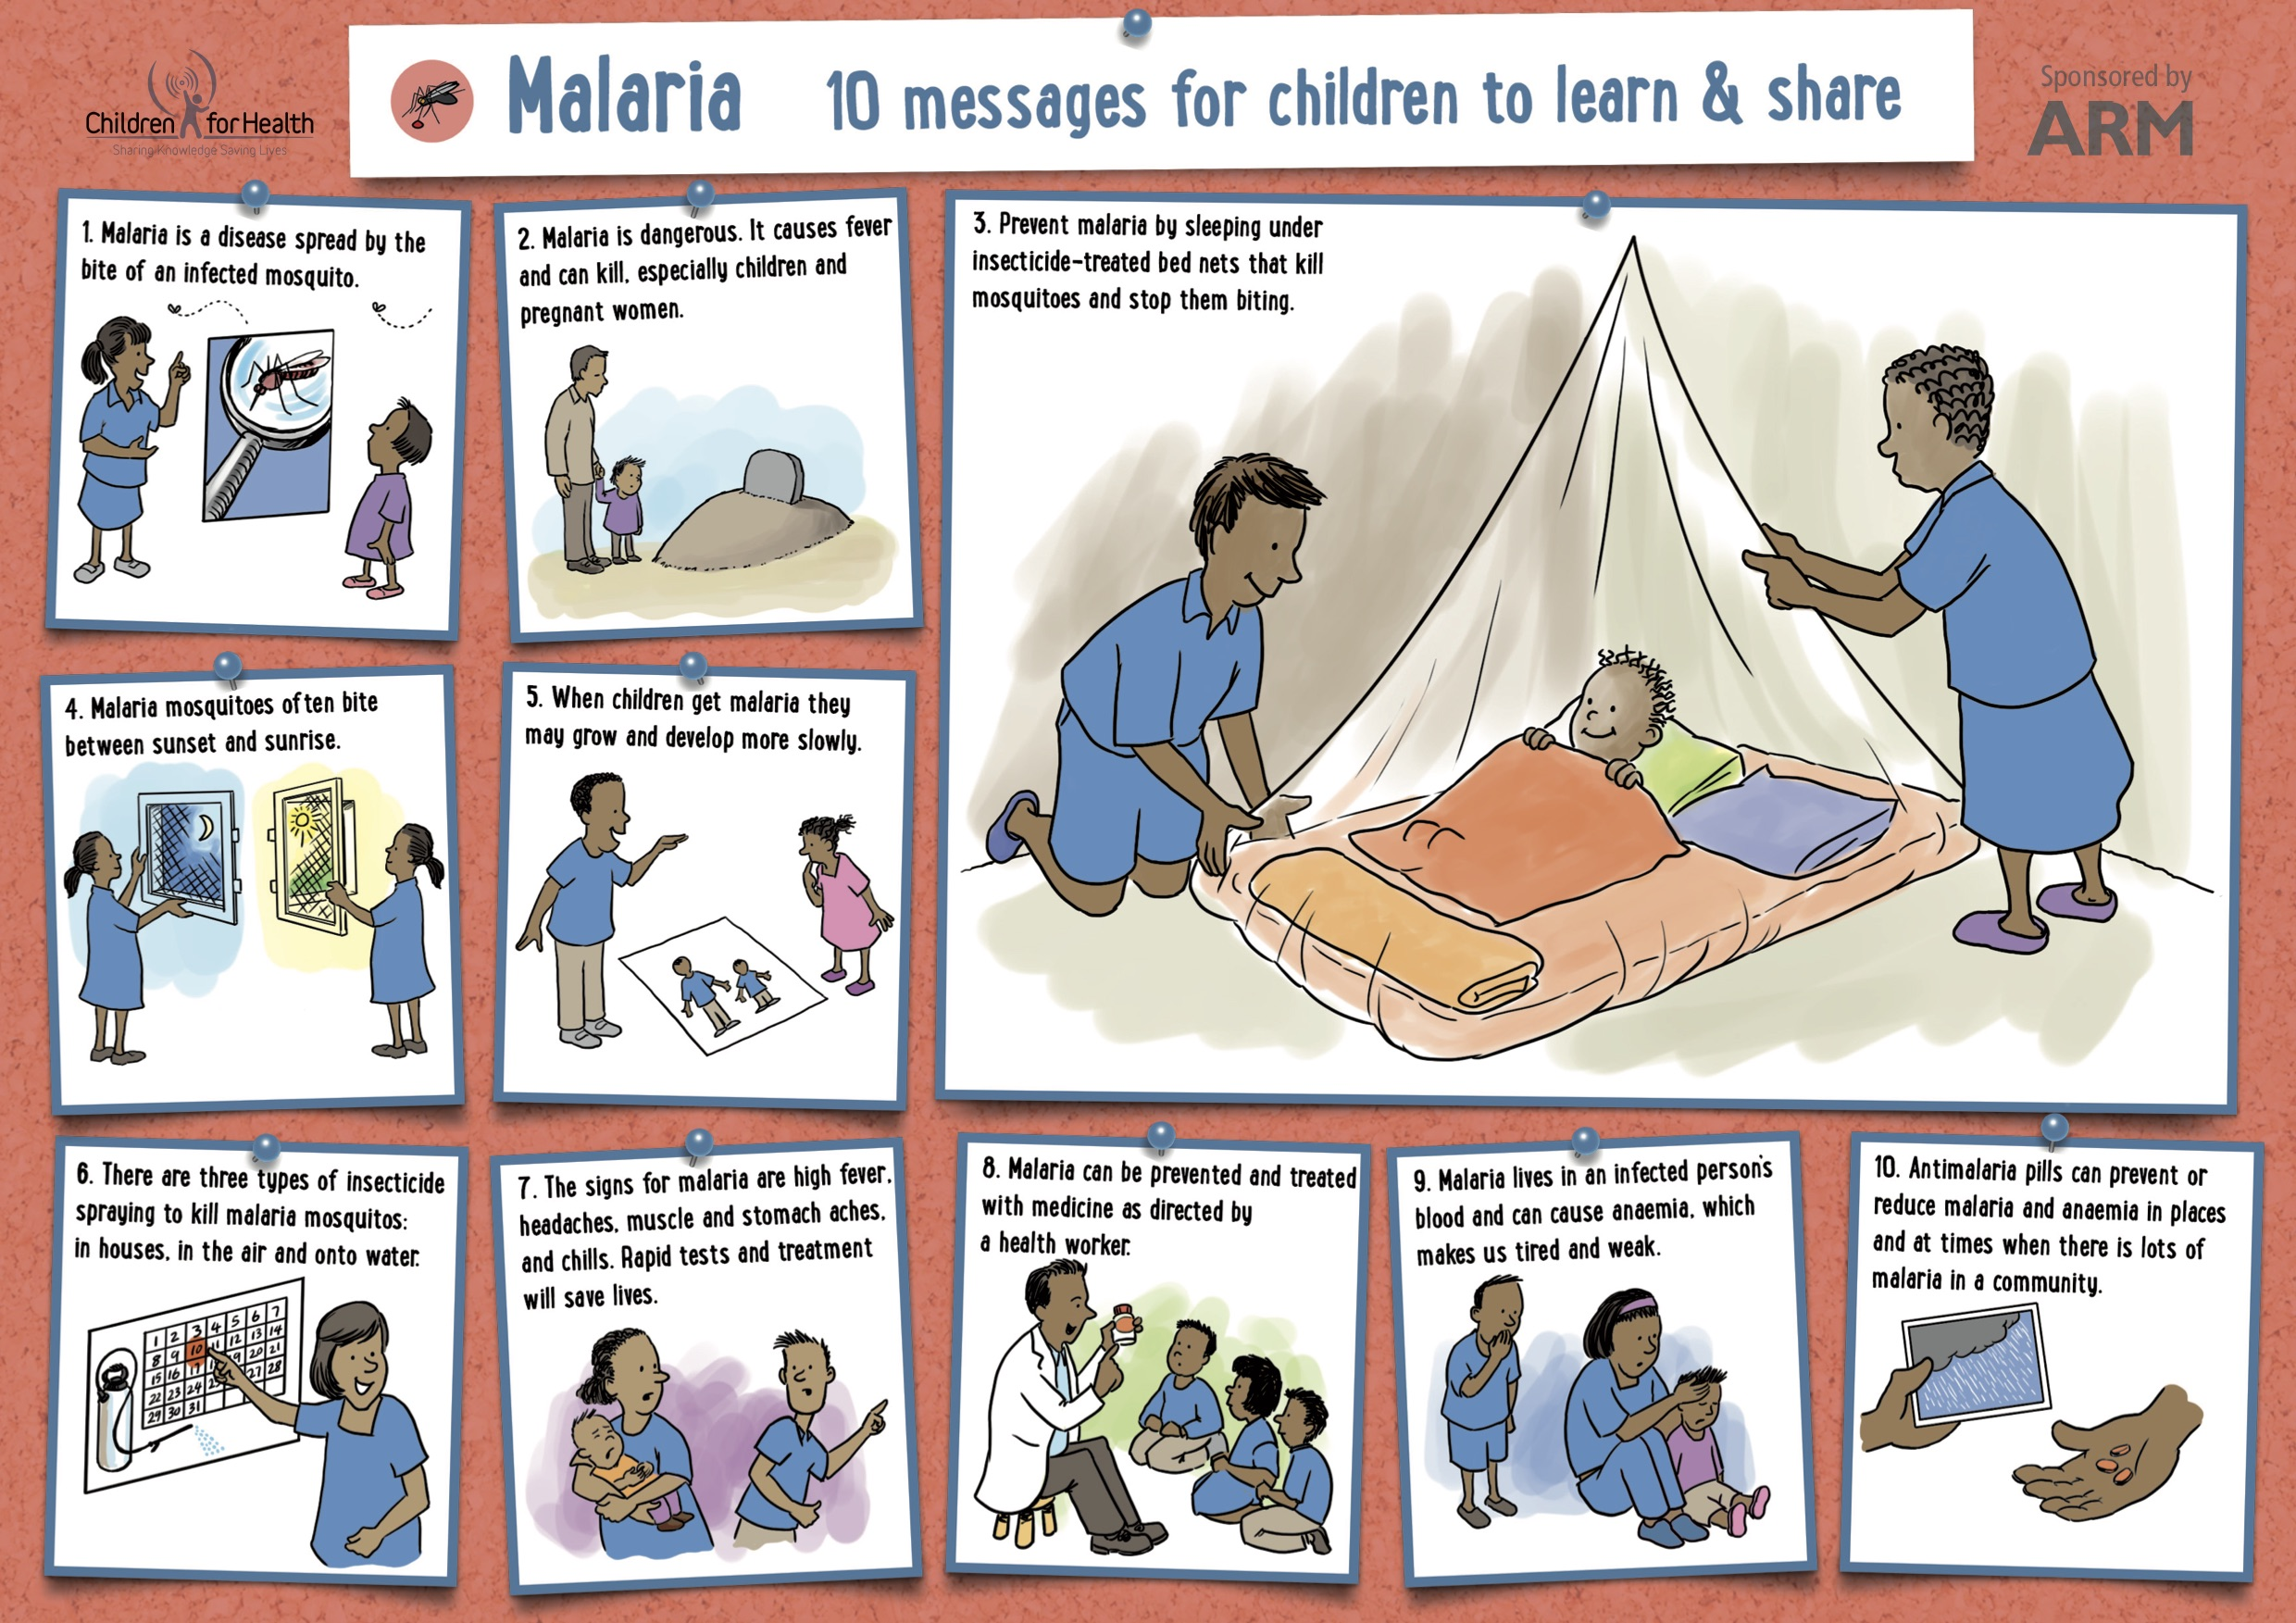 Children for Health's Malaria prevention poster. It is red with 10 boxes with white backgrounds, each with a cartoon and a message about preventing malaria.